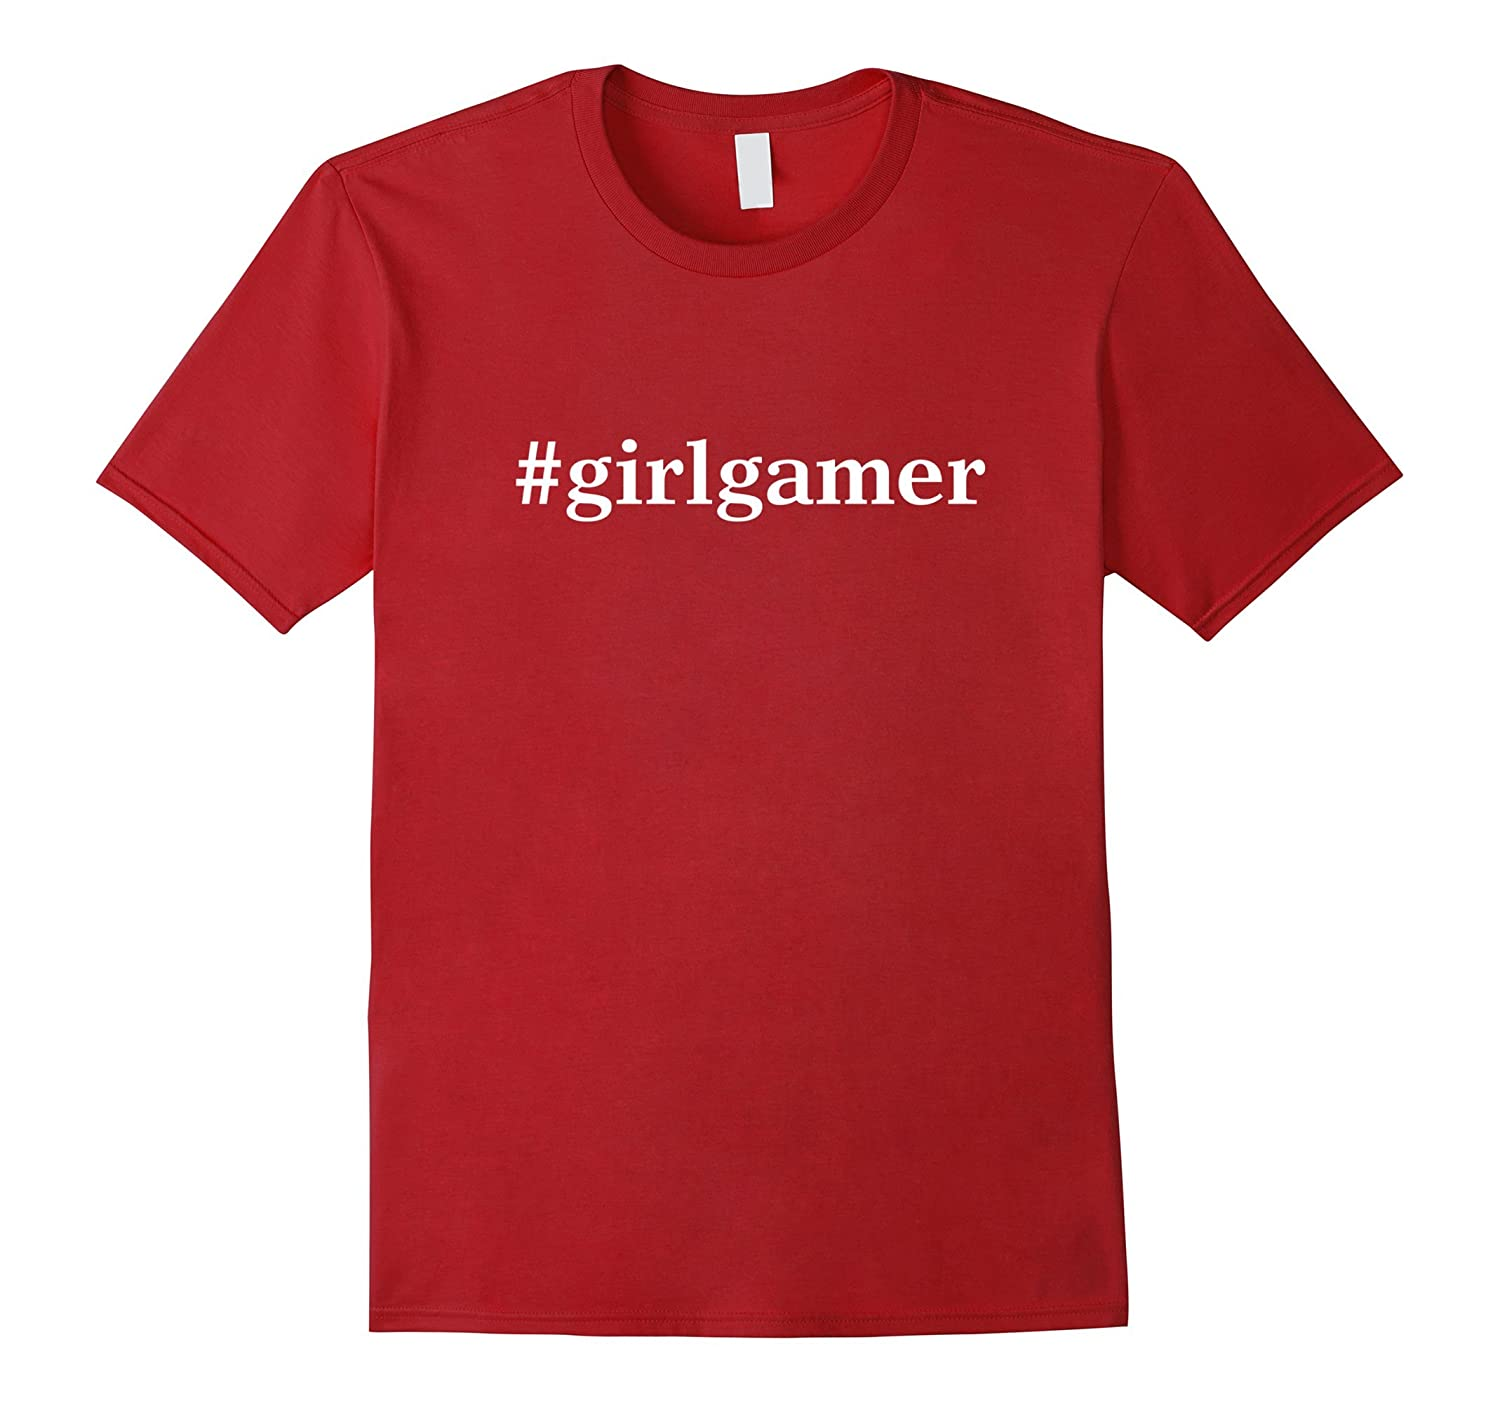 #girlgamer Hashtag Girl Gamer Shirt for Women Kids-CL